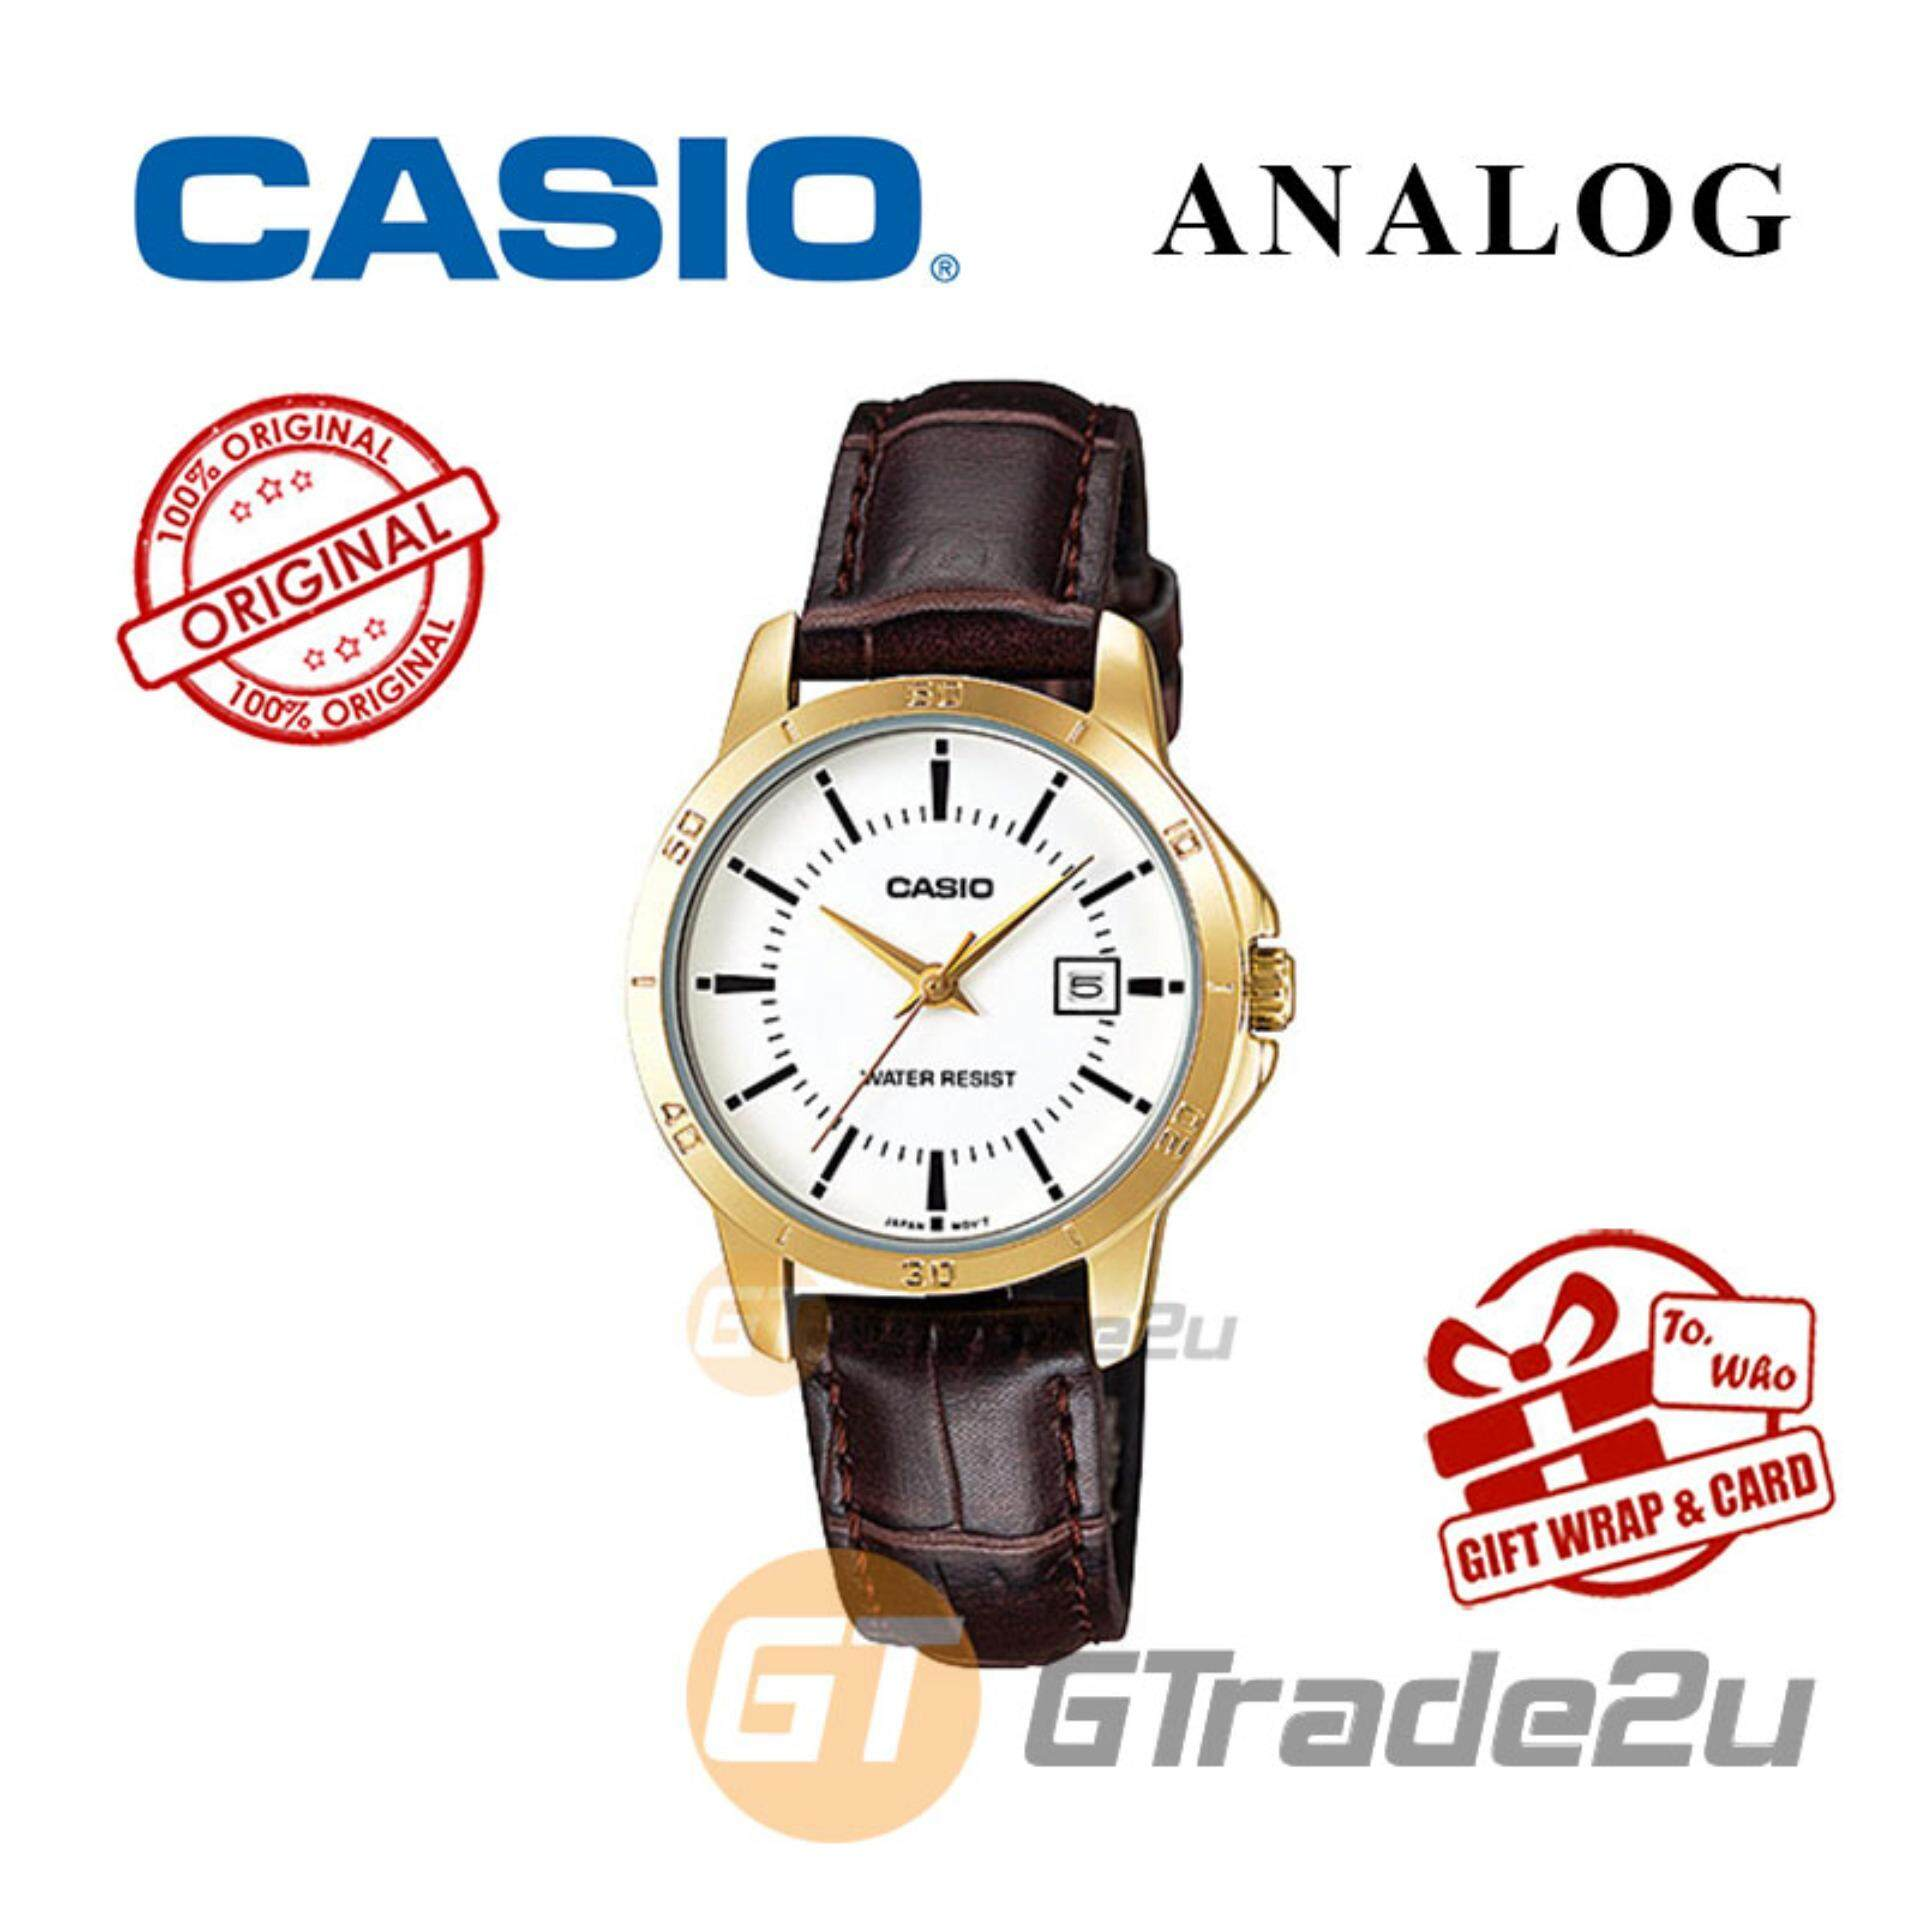 Casio Products For The Best Price In Malaysia Jam Tangan Pria 333mlbldg1 Standard Ltp V004gl 7av Analog Ladies Watch Gold Leather